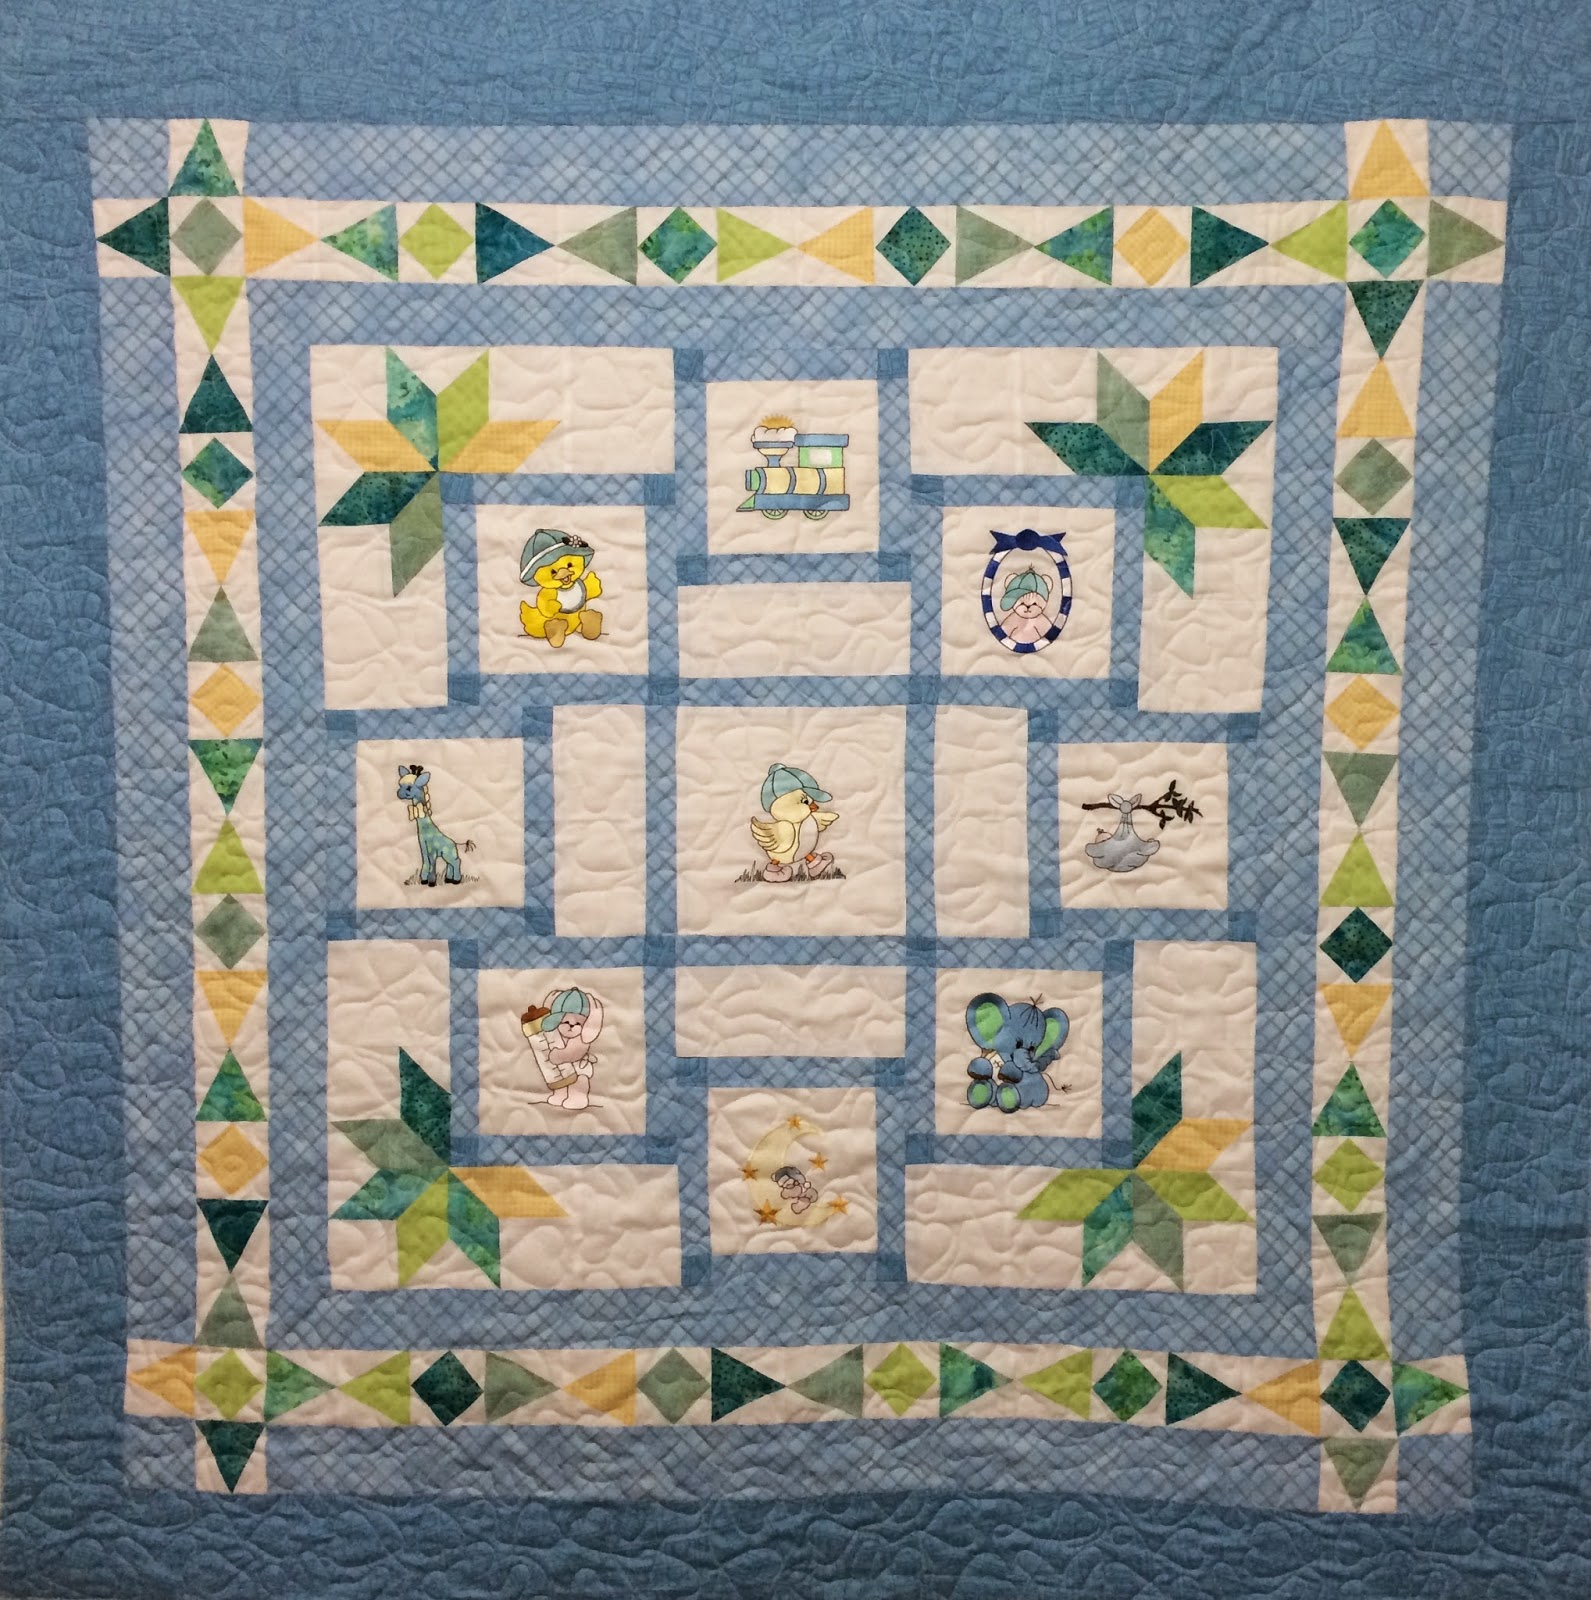 Joan Salesman's Baby Embroidery Quilt